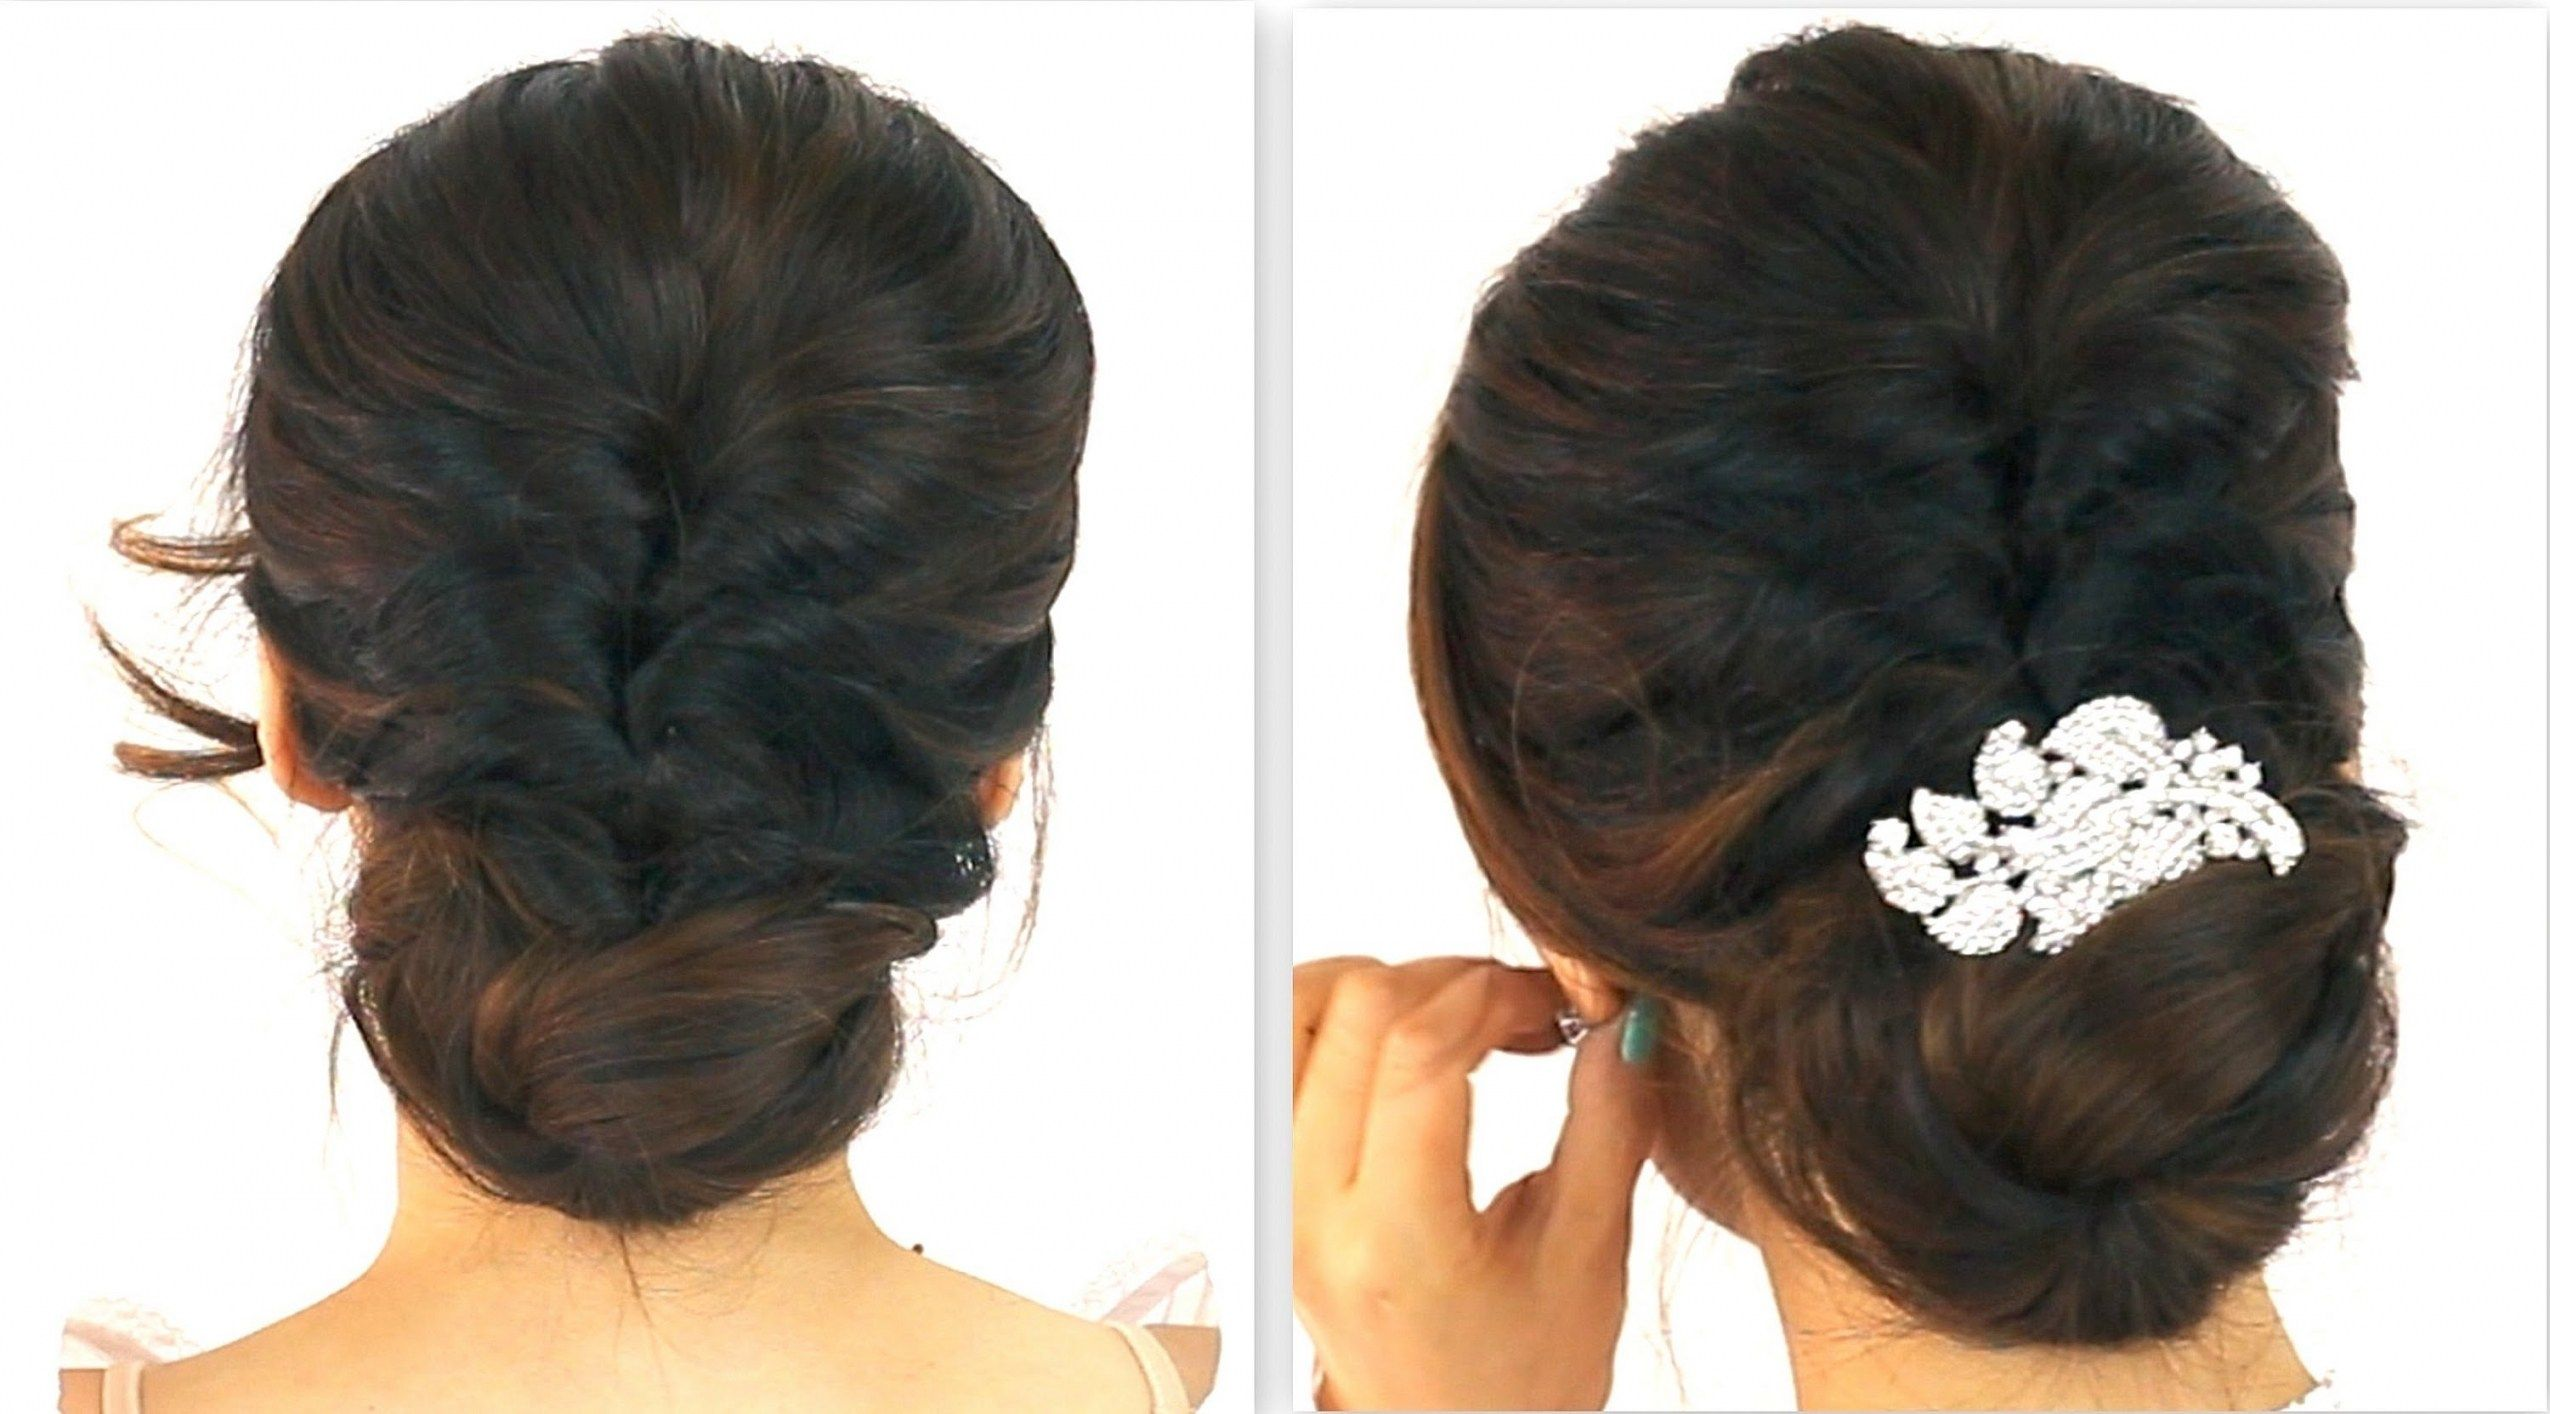 Indian Wedding Party Hairstyles For Short Hair Long Hair Styles Long Hair Ponytail Long Hair Tutorial